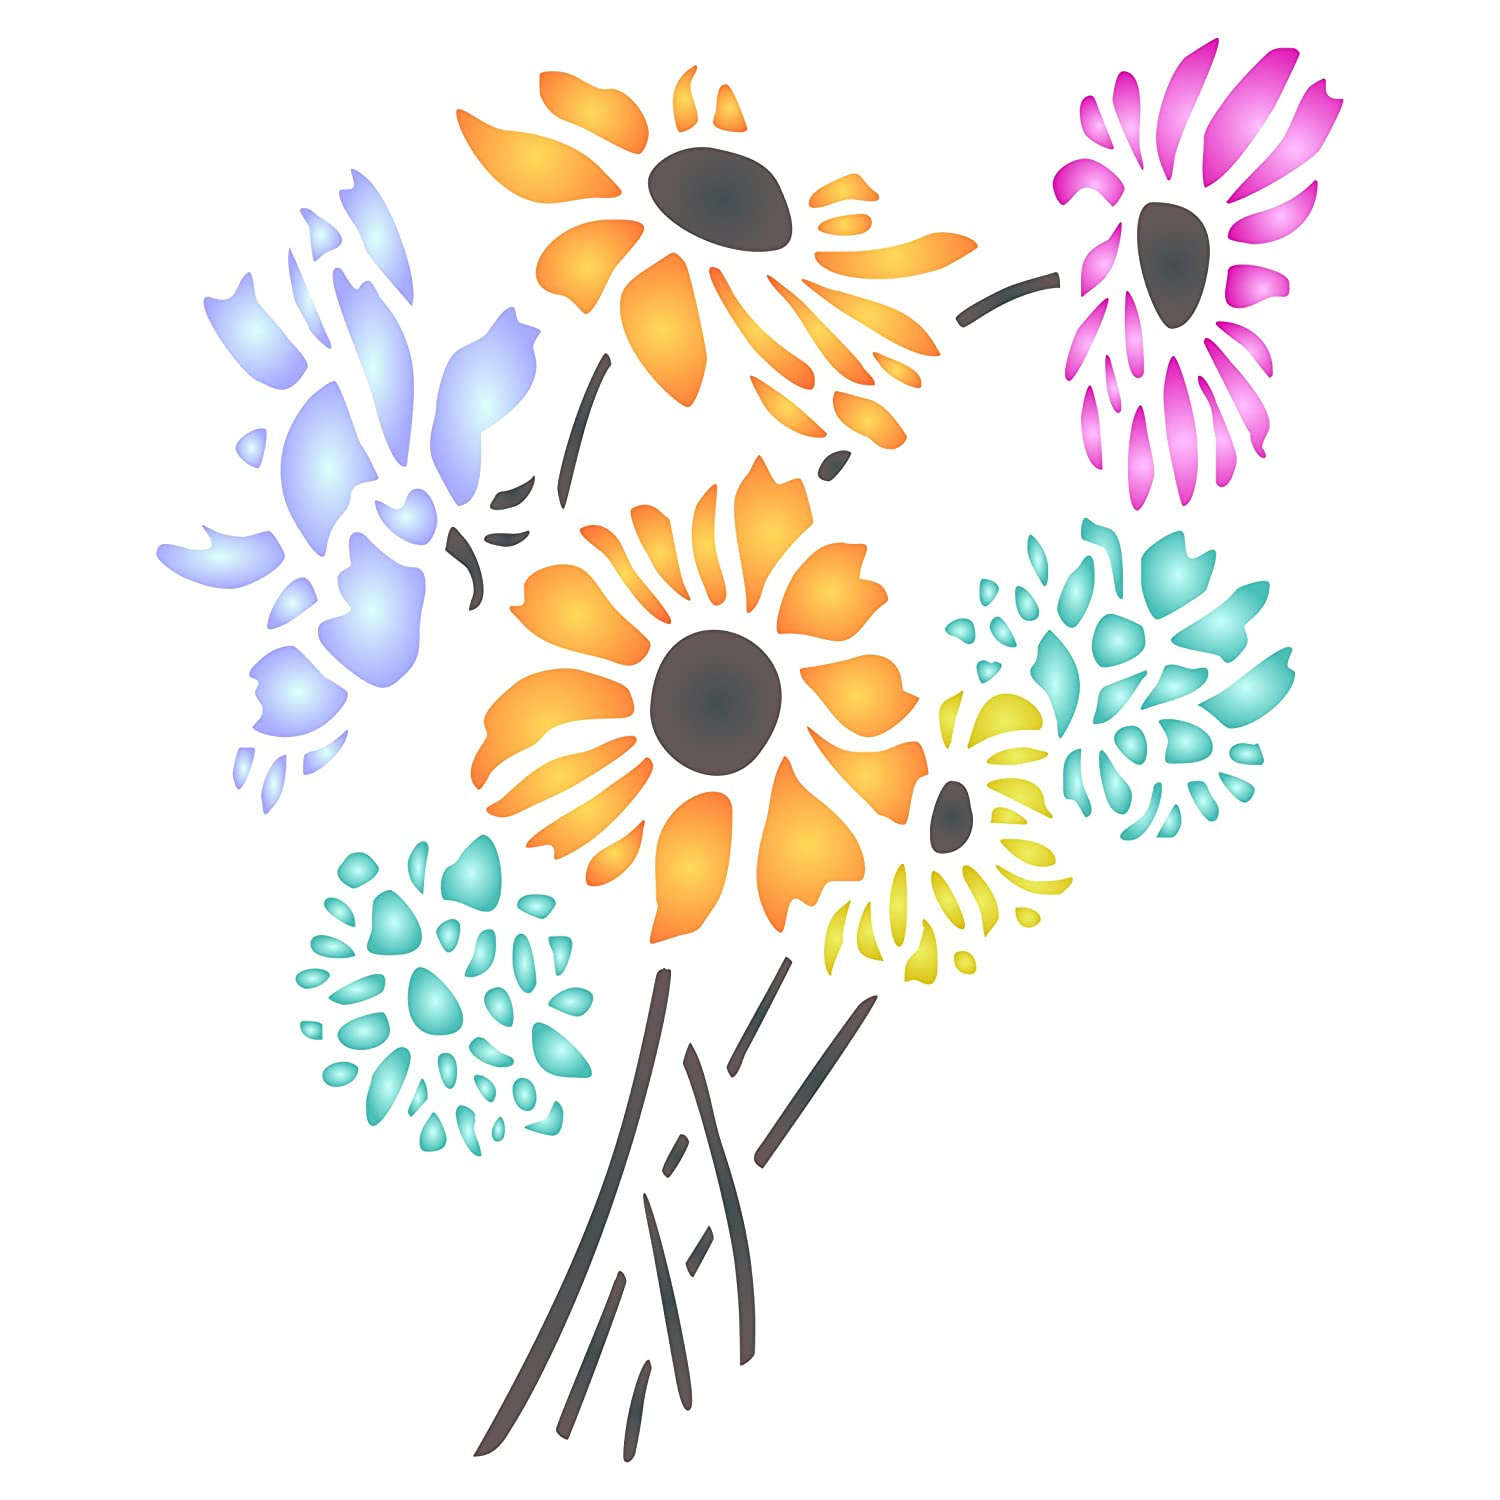 Daisy Flower Stencil - 6 5 x 8 inch (M) - Reusable Flora Bouquet Bunch Wall  Stencils for Painting - Use on Paper Projects Scrapbook Journal Walls